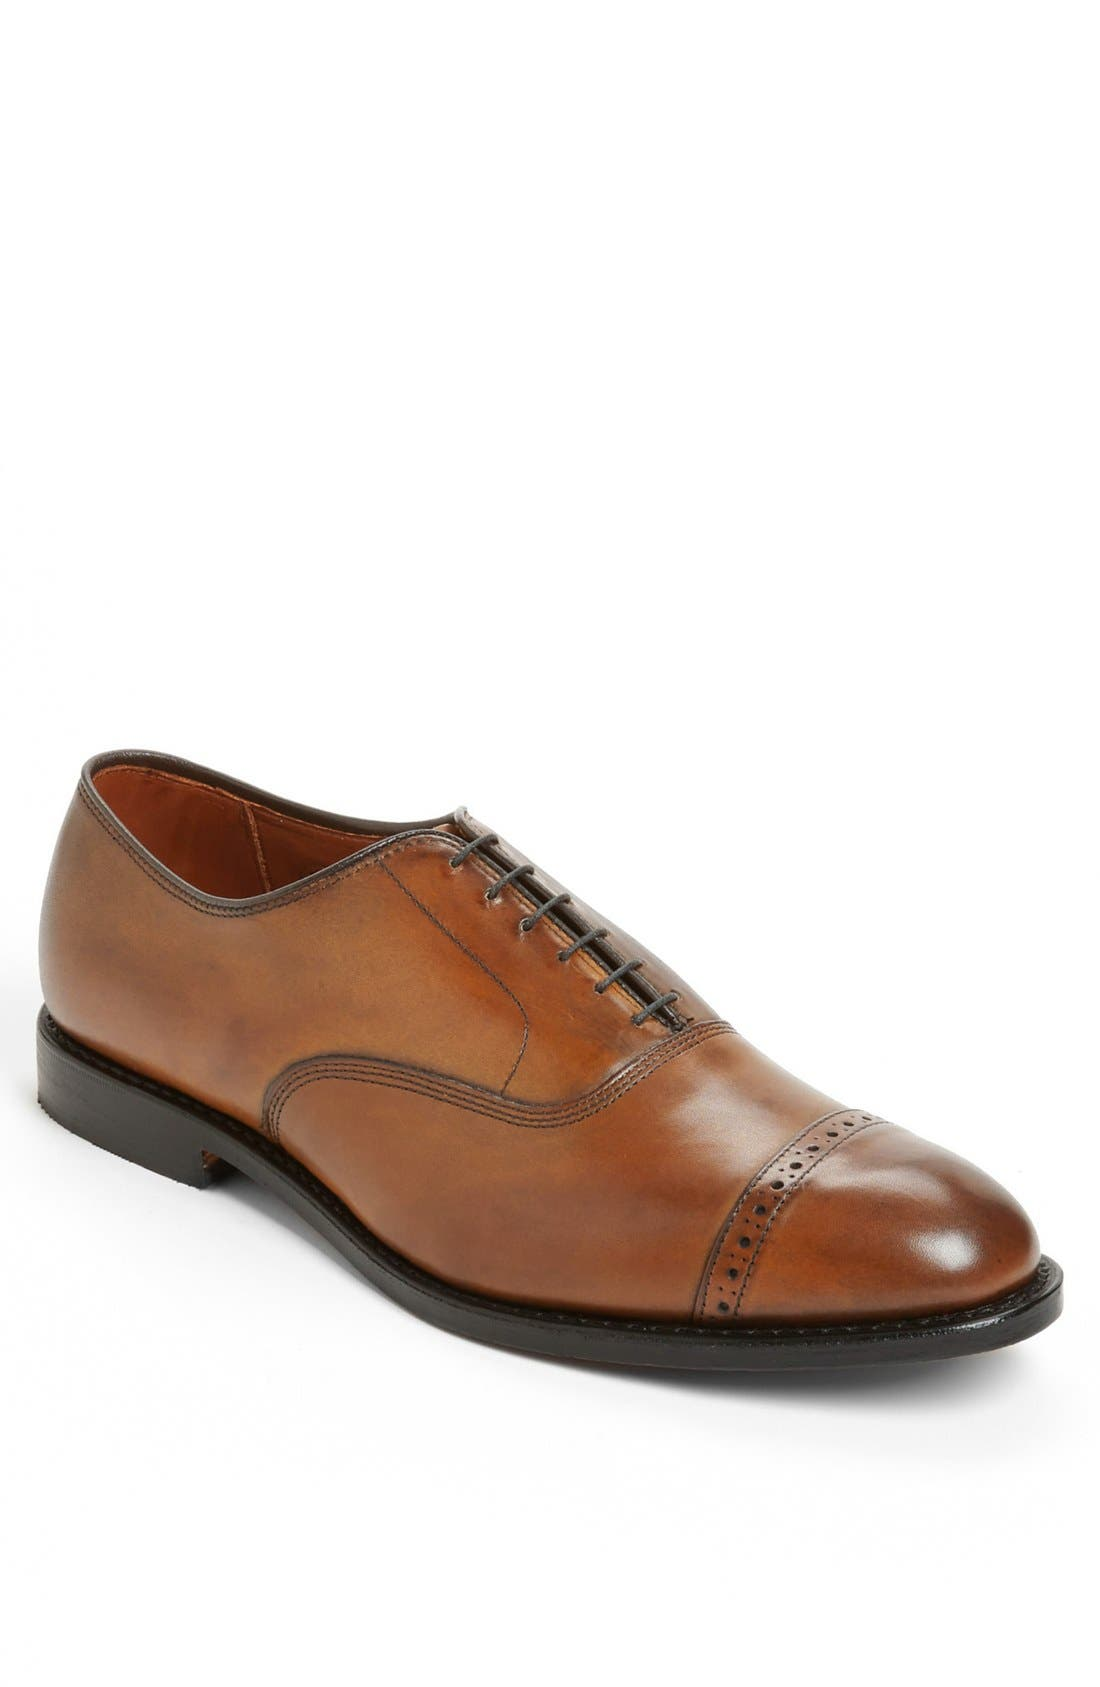 'Fifth Avenue' Oxford,                         Main,                         color, Walnut Calf